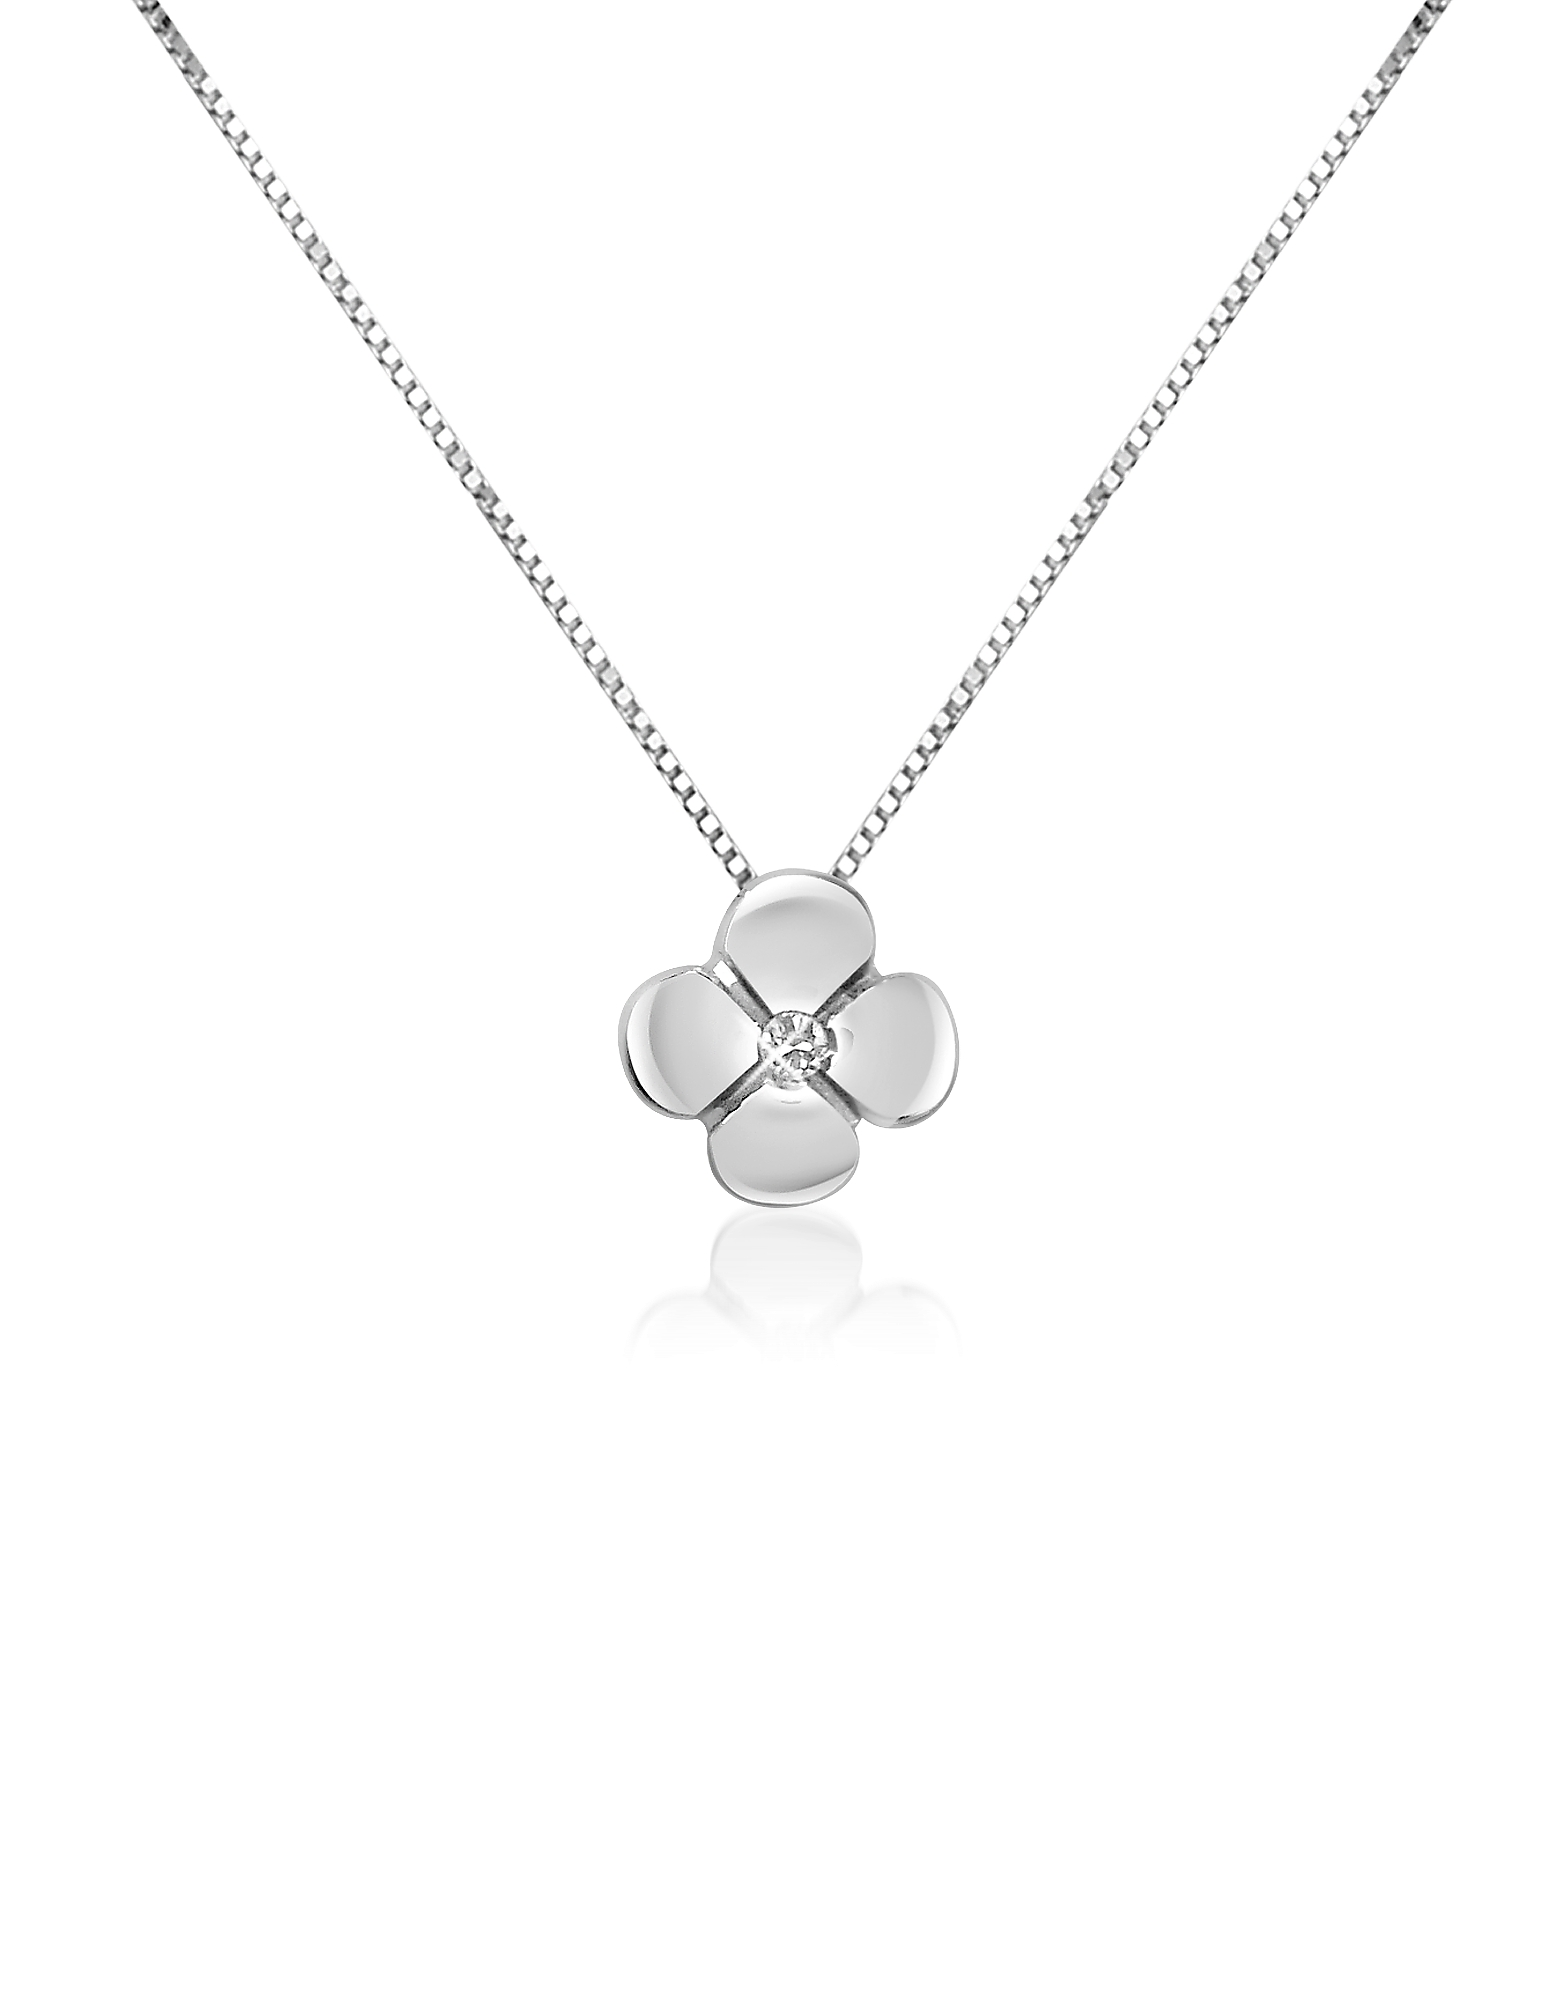 Forzieri Necklaces, 0.15 ct Diamond Flower Pendant 18K Gold Necklace